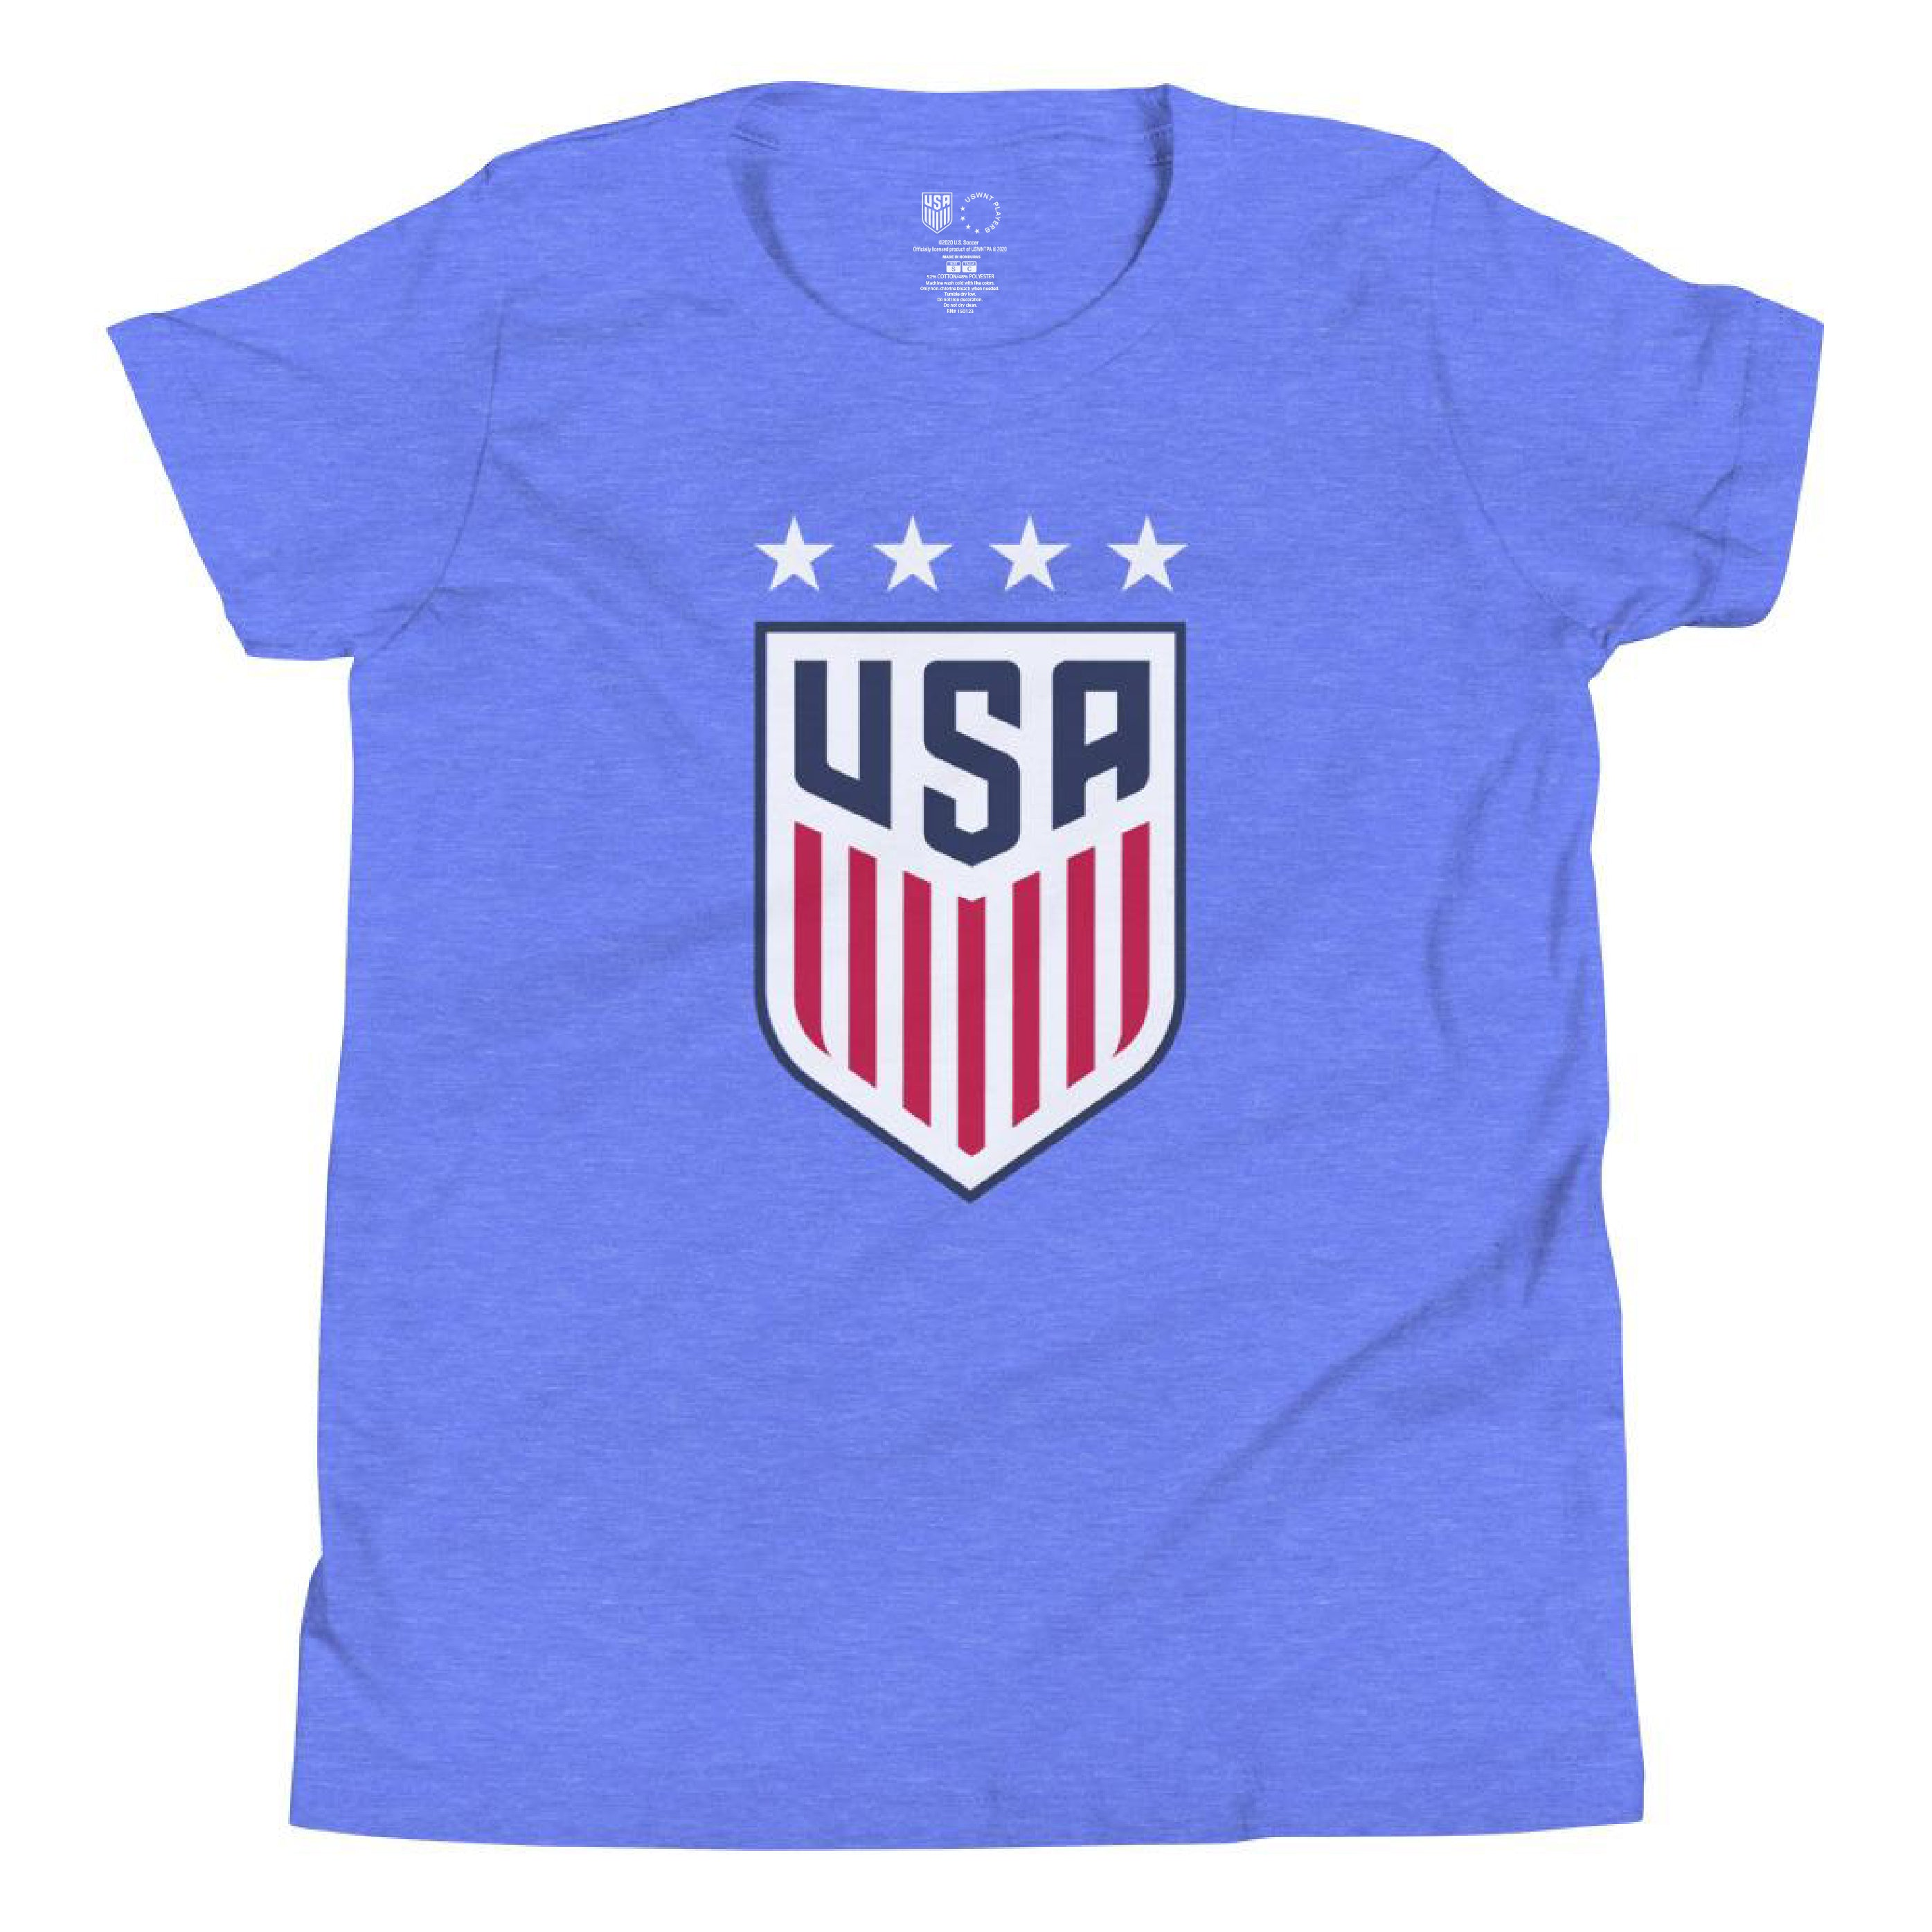 Cindy Parlow 1999 Youth USWNT 4 Star T-Shirt